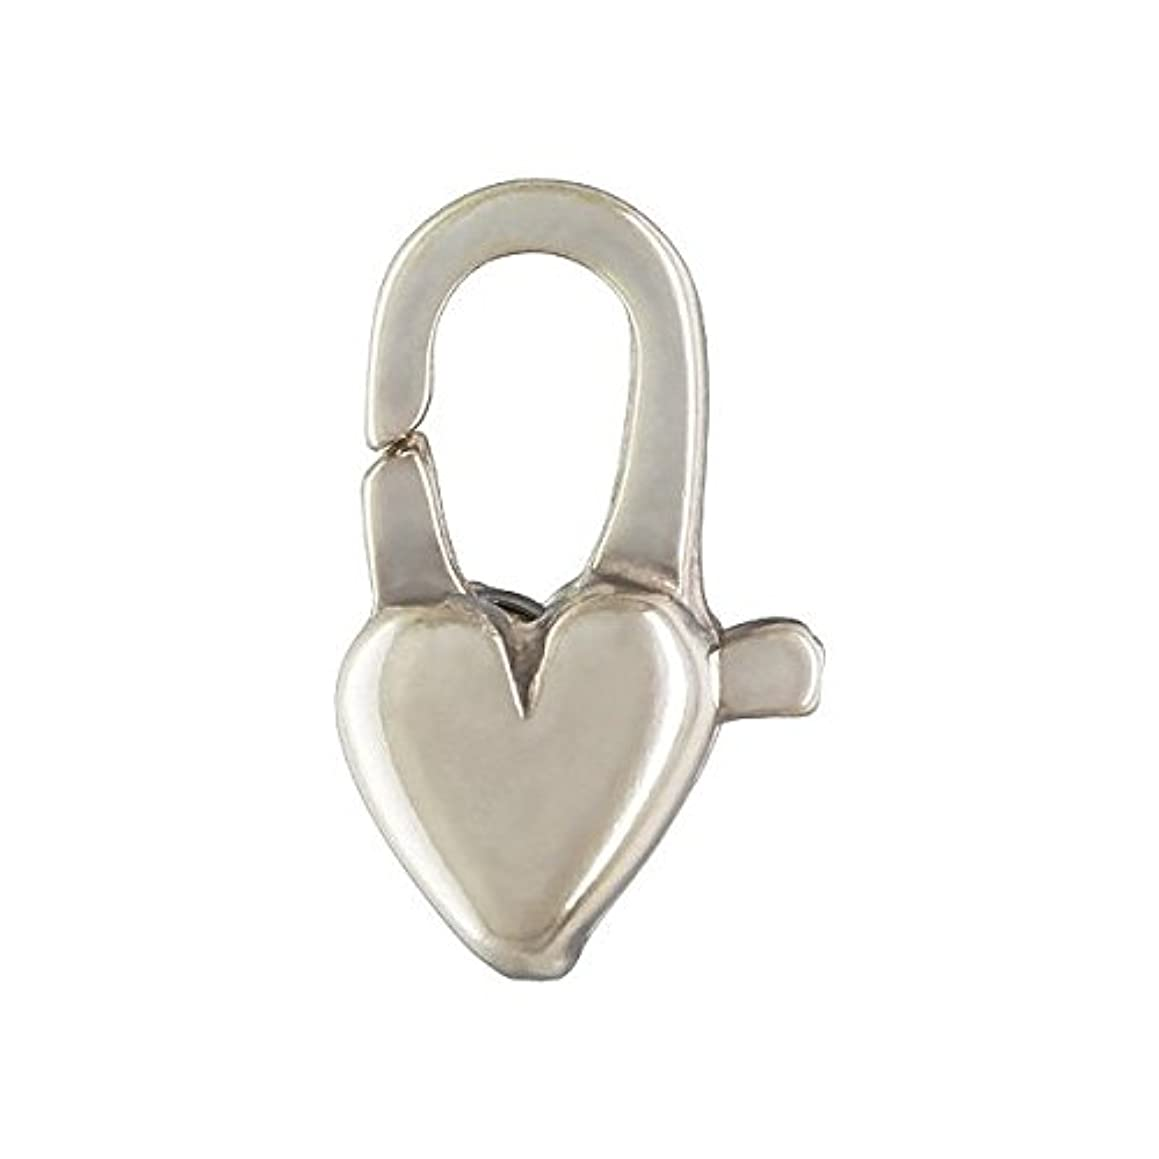 4 qty. 5x12mm Heart Clasps .925 Sterling Silver By JensFindings